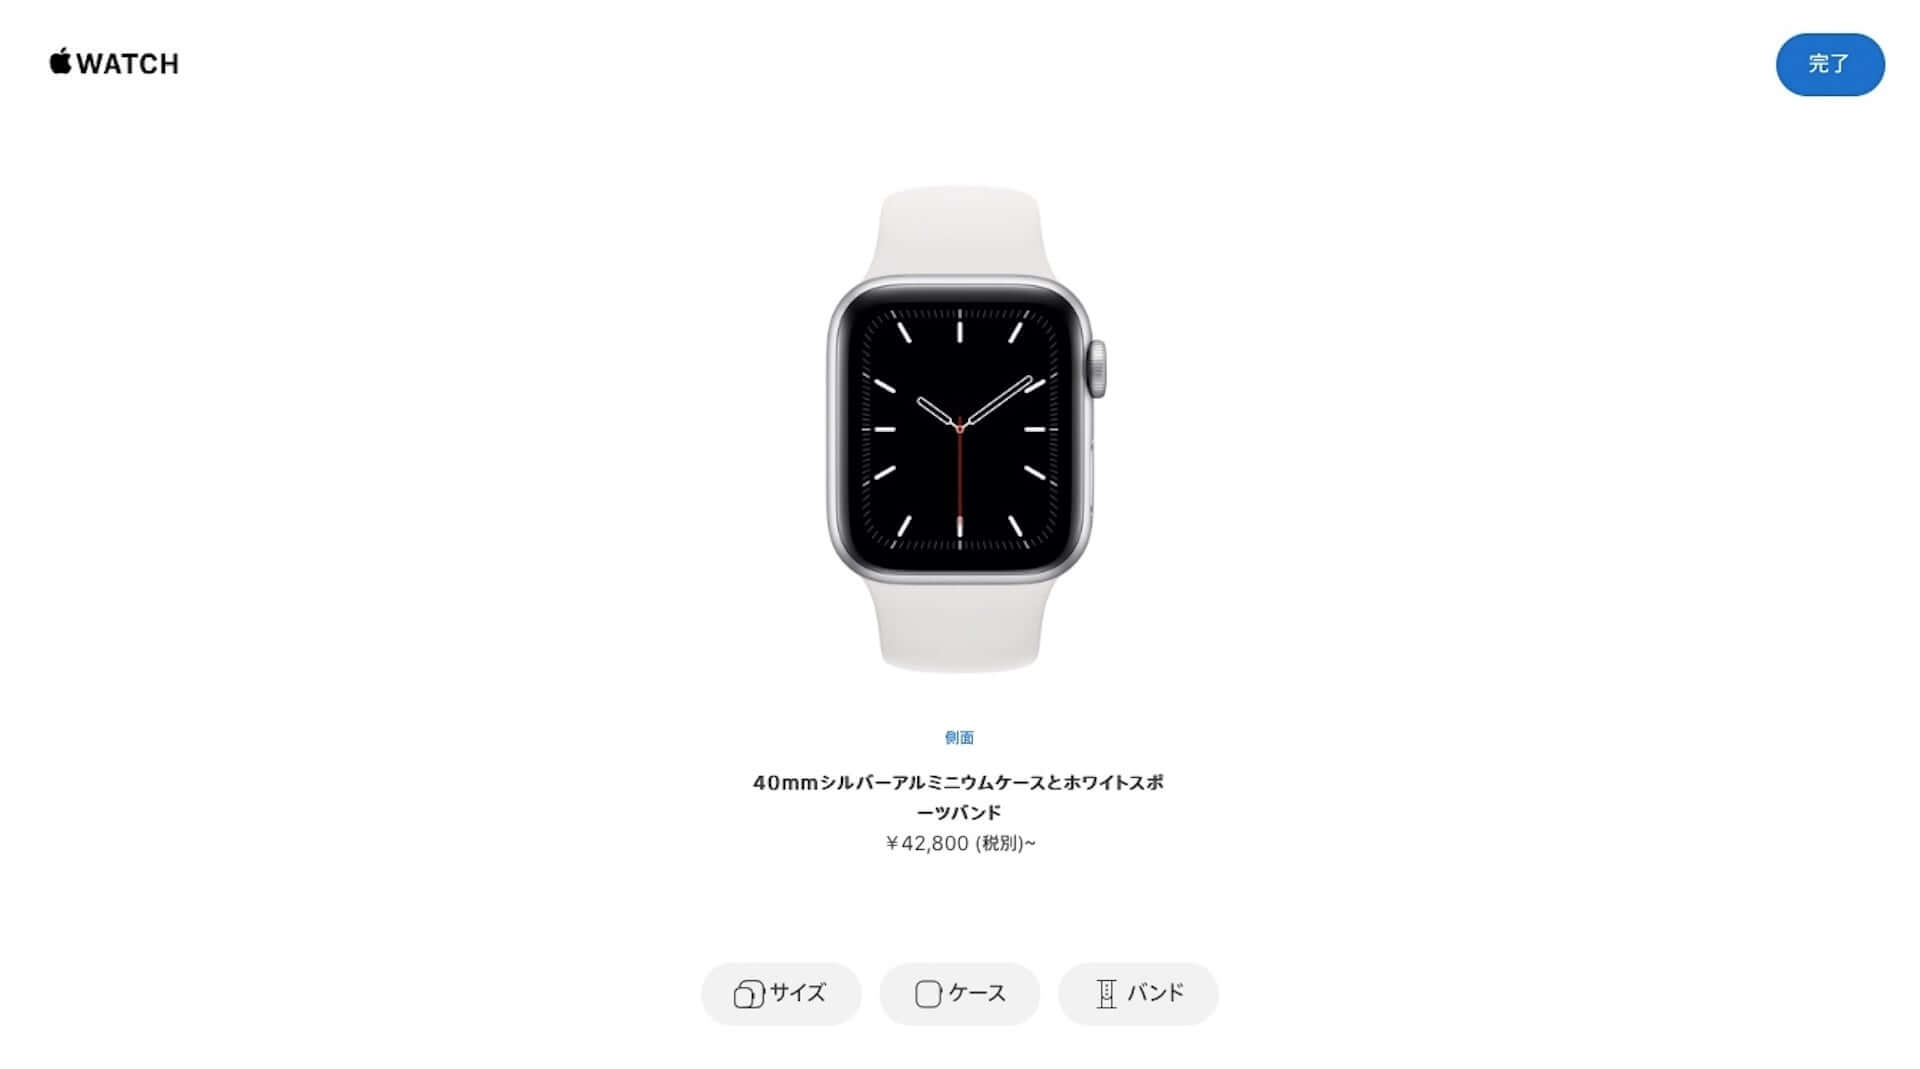 あなた好みのApple Watchを探そう!Apple Watch Studioが開設 tech190911_applewatch_studio_3-1920x1069